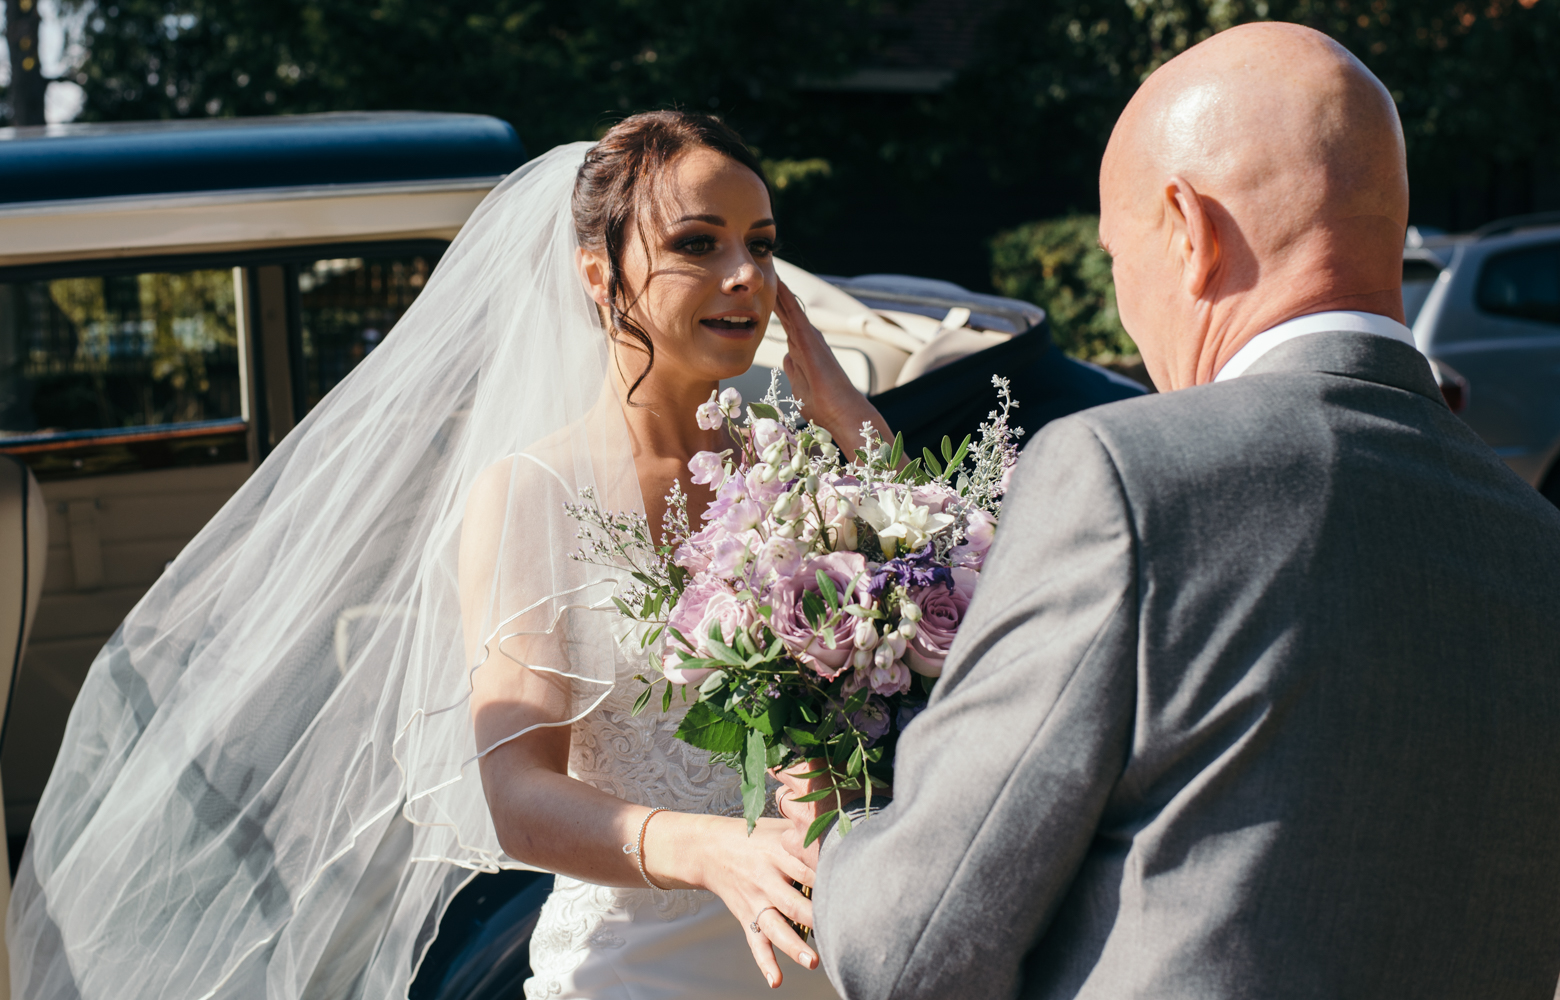 The bride and her father as she gets out of the car at church